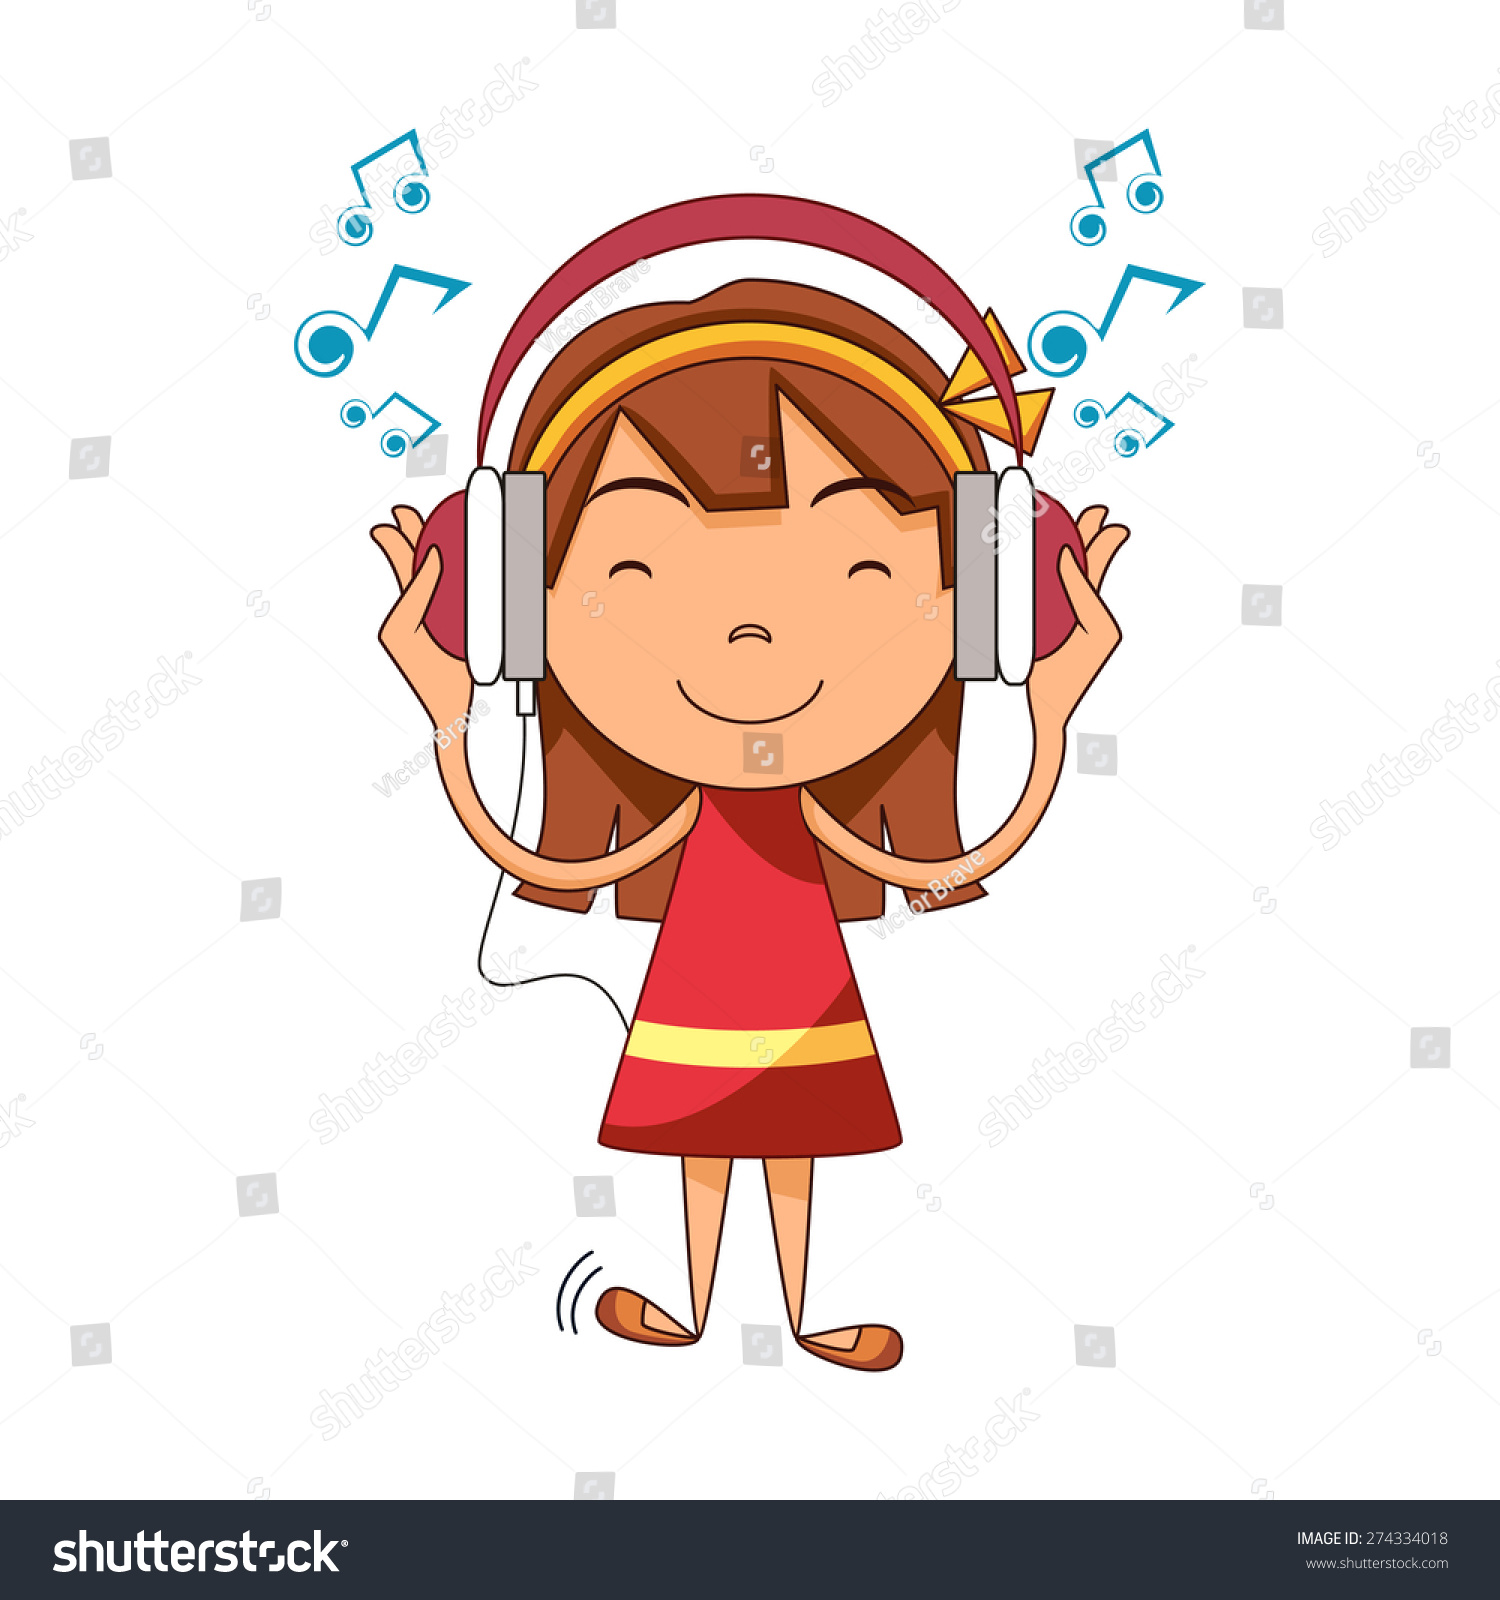 Girl listening to music clipart 3 » Clipart Station.